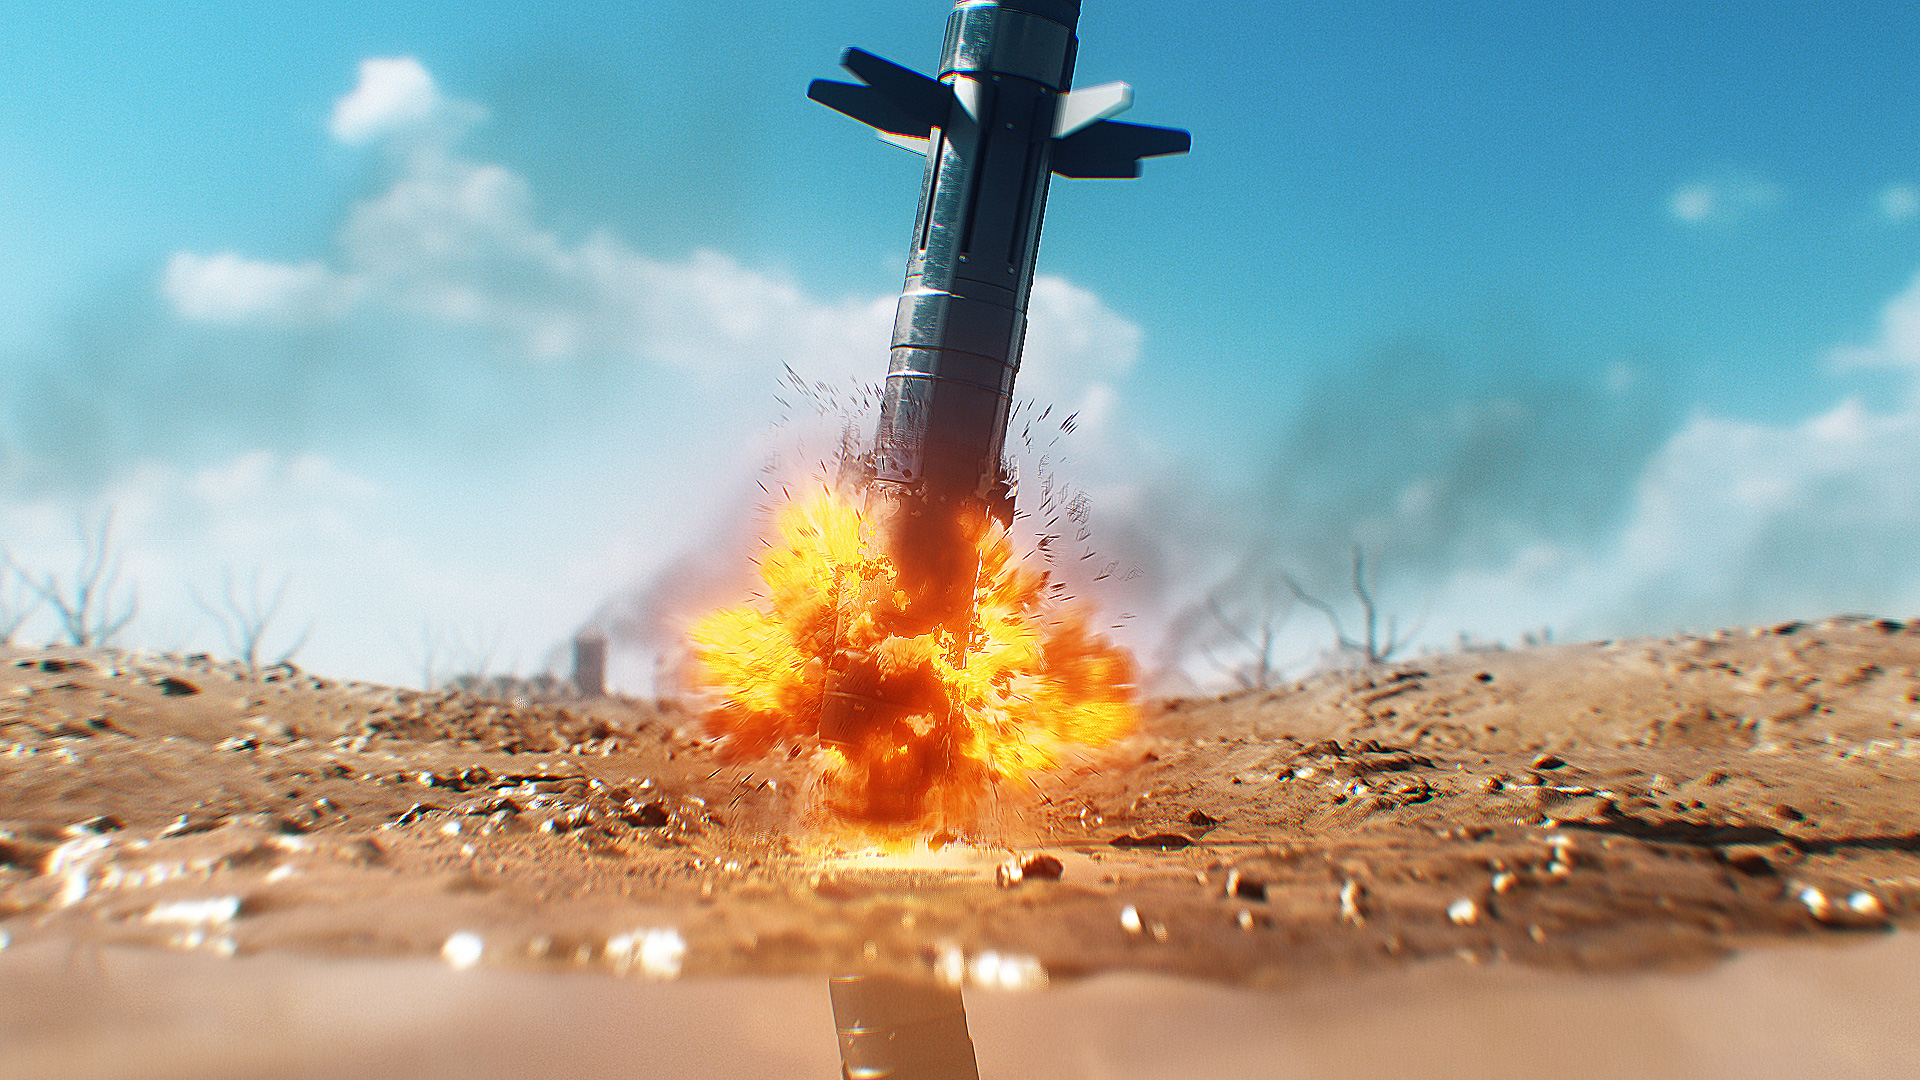 Download 3D Missile Models Explosion